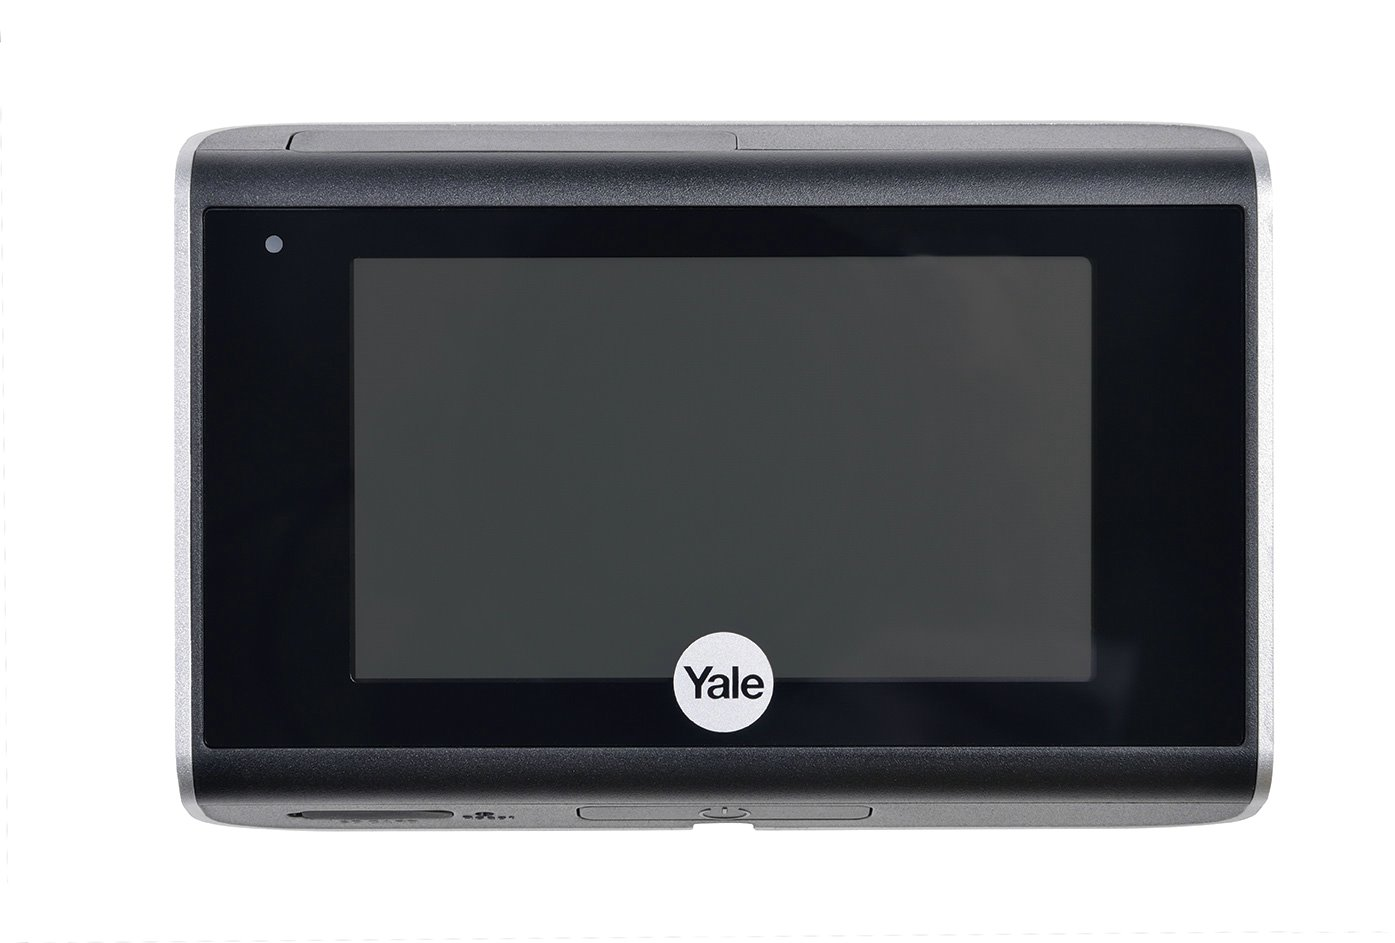 YRV-WI-619 Yale Digital Look Door Viewer with Wifi